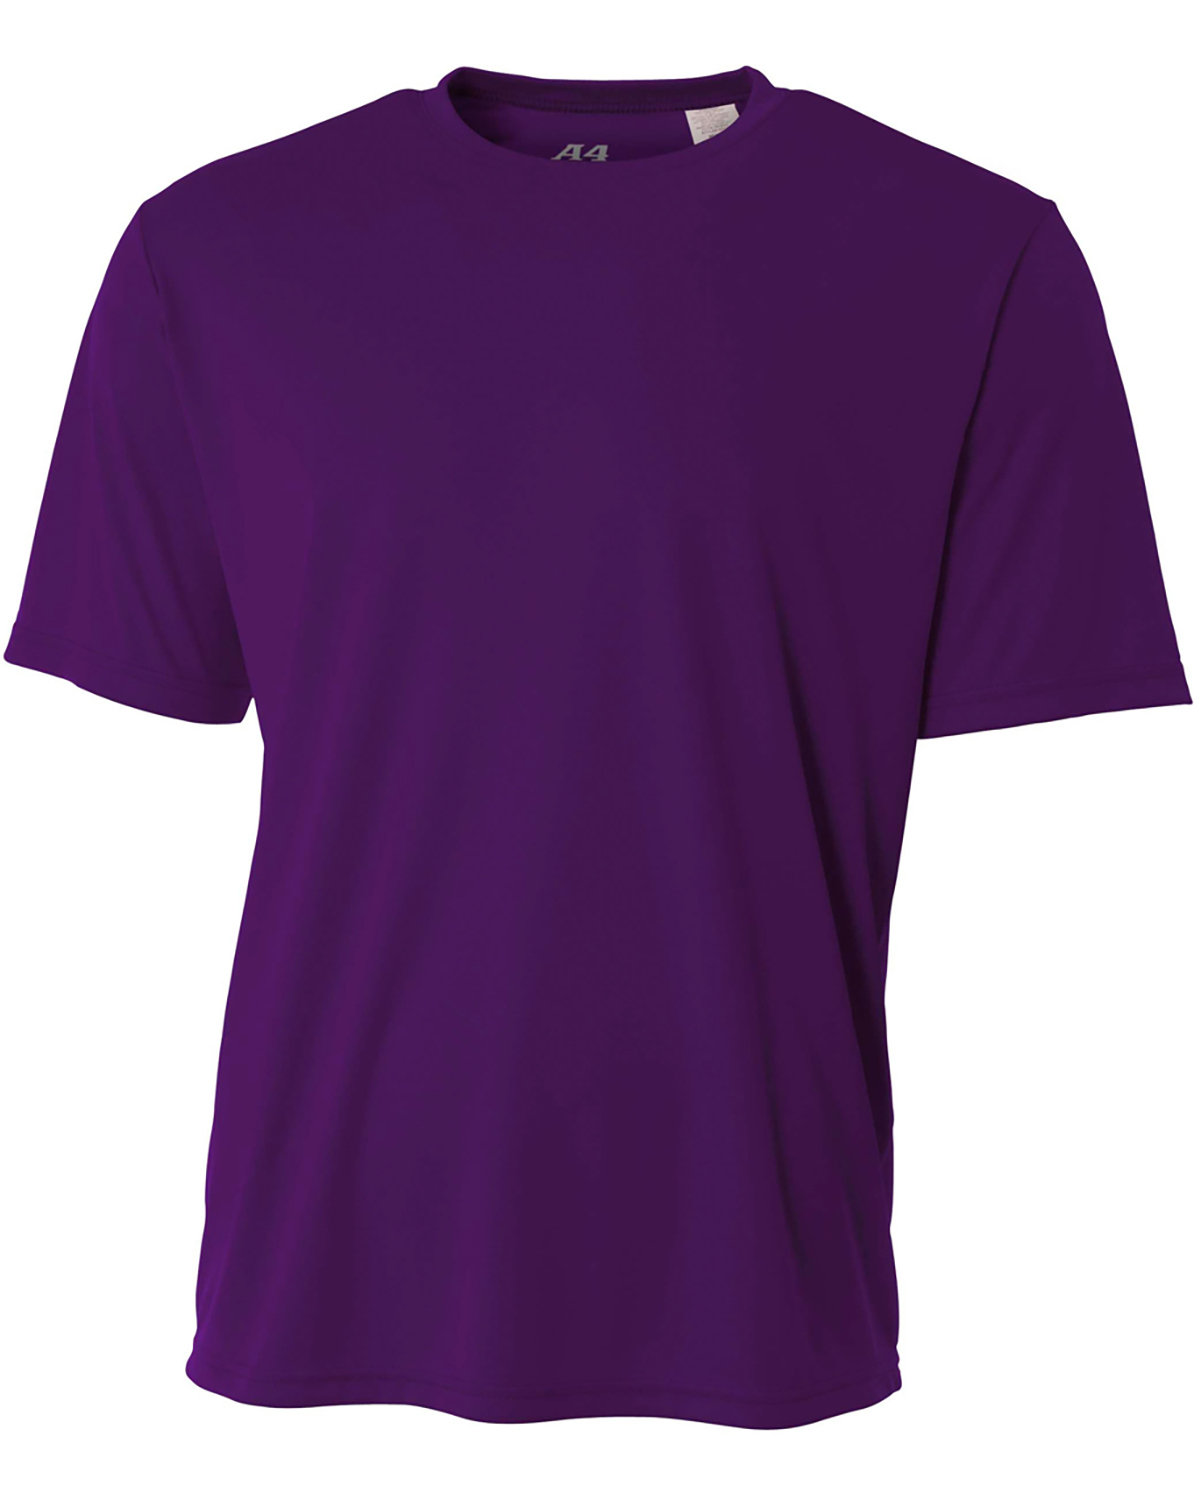 A4 Youth Cooling Performance T-Shirt PURPLE